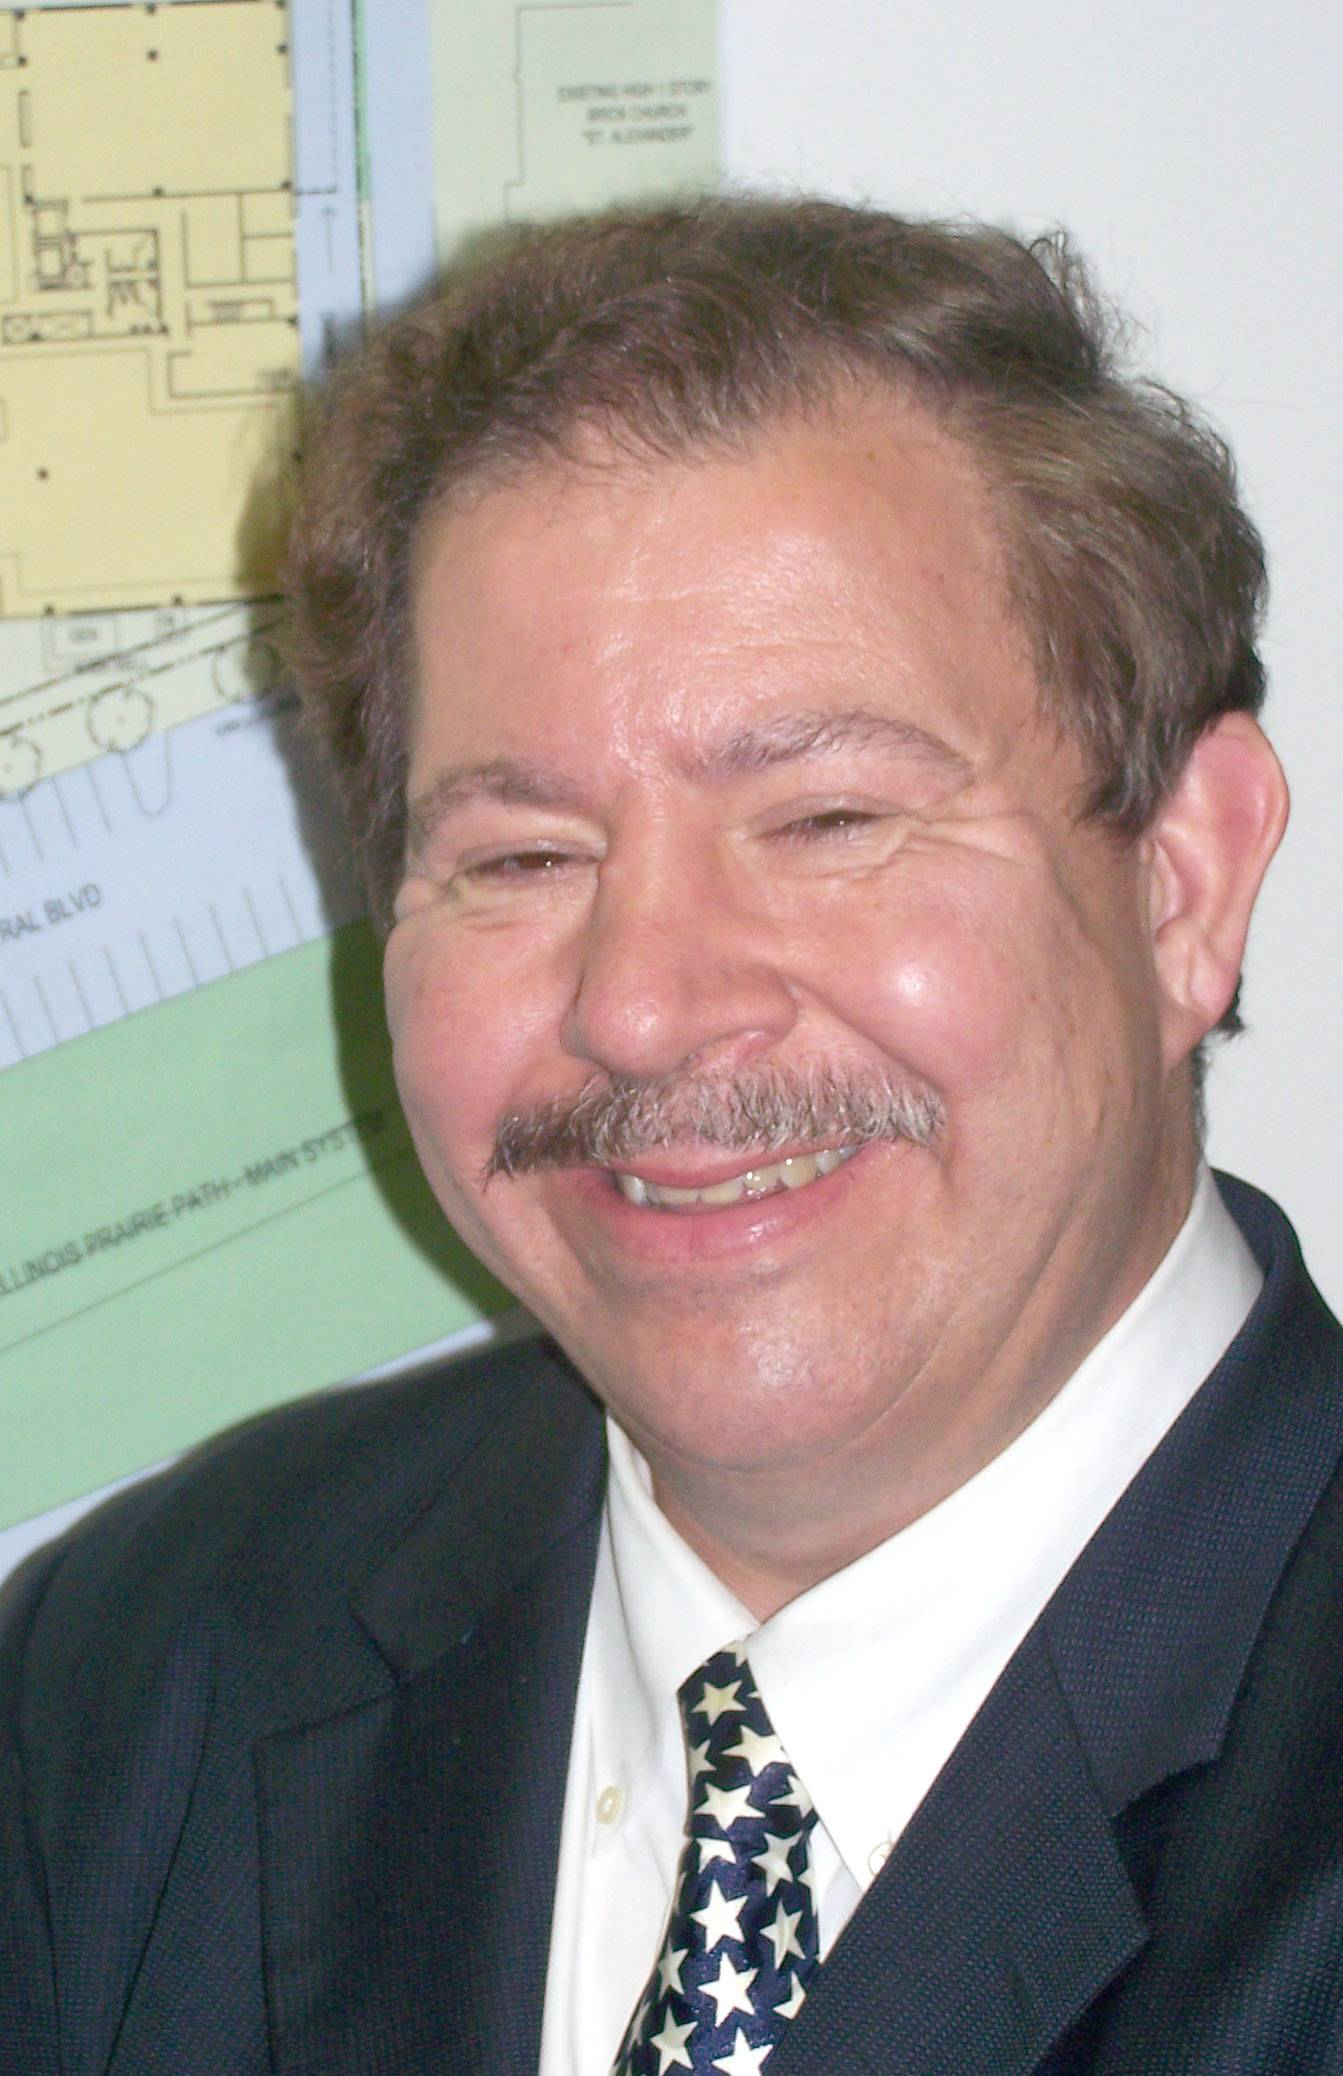 Robert Wagner, running for Grafton Township Board (4-year Terms)